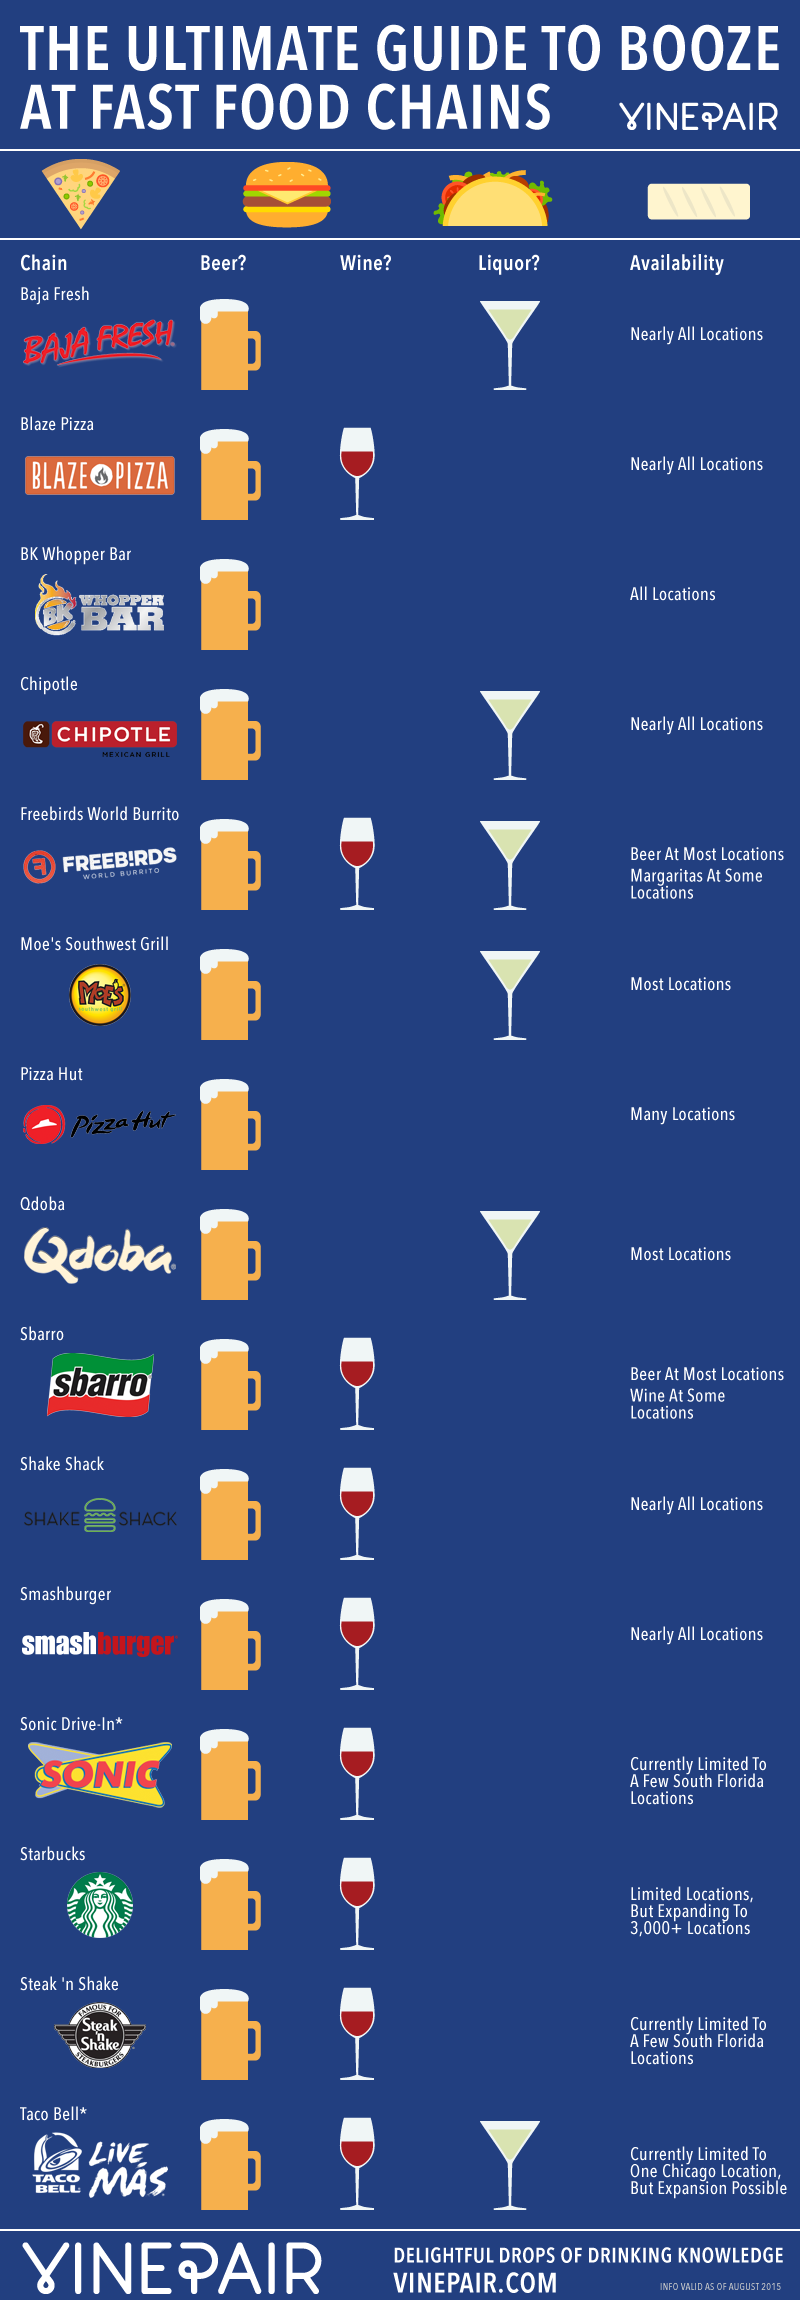 The Ultimate Guide To Fast Food Chains That Serve Alcohol